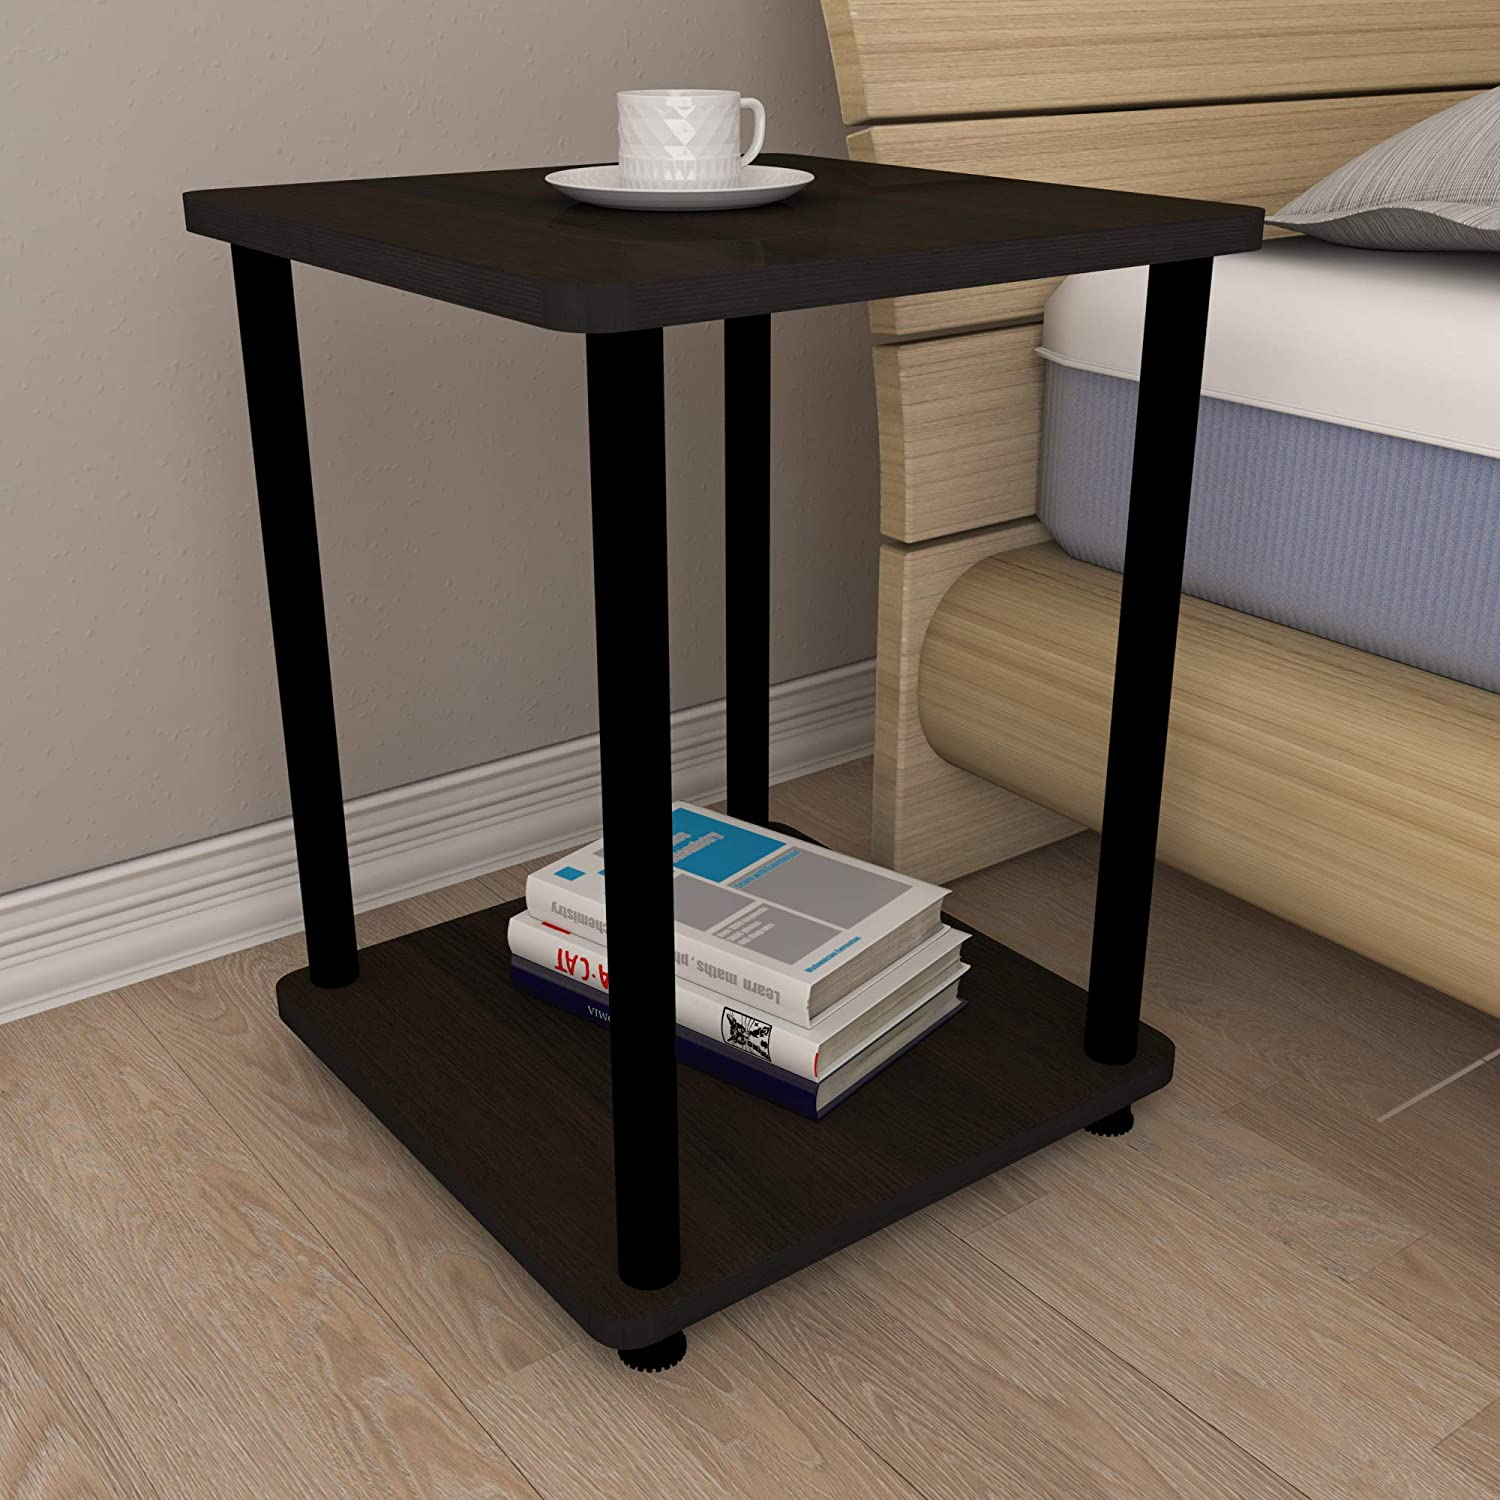 Townsville Ziggy Bed Side Table Matte Finish Cappuccino Oak Amazon In Home Kitchen